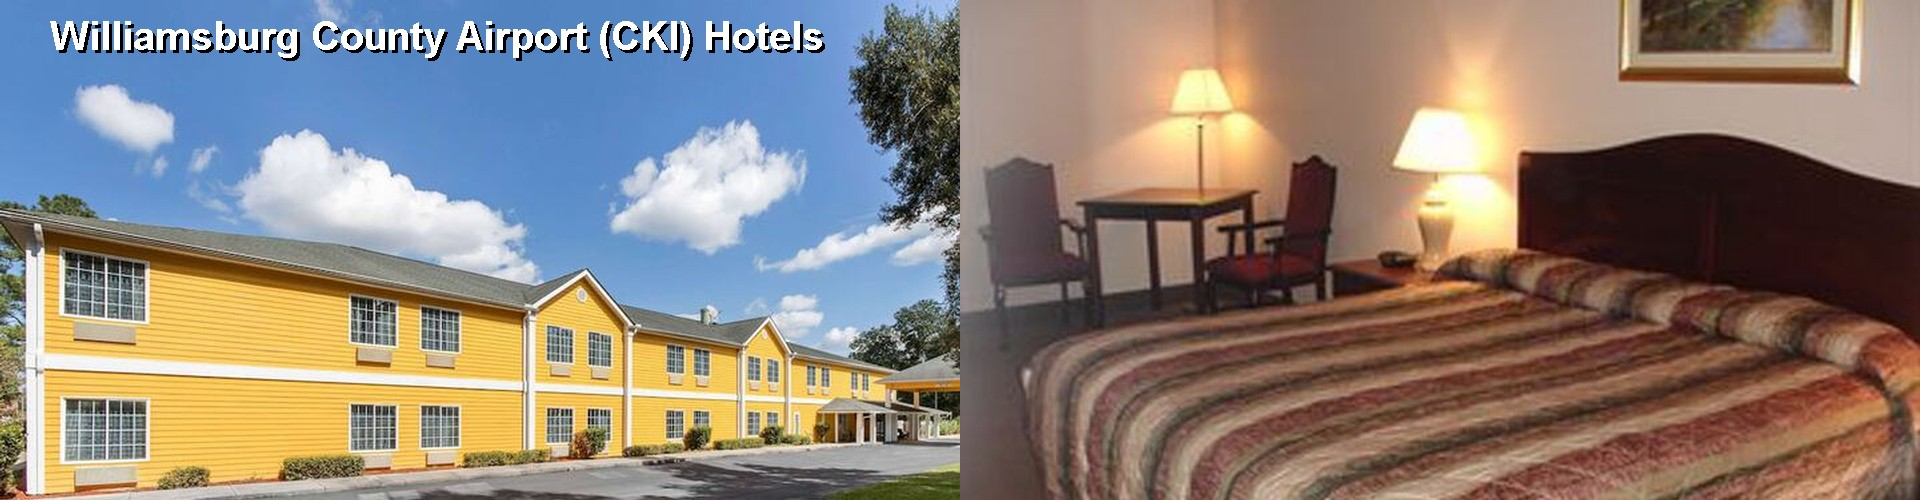 3 Best Hotels near Williamsburg County Airport (CKI)